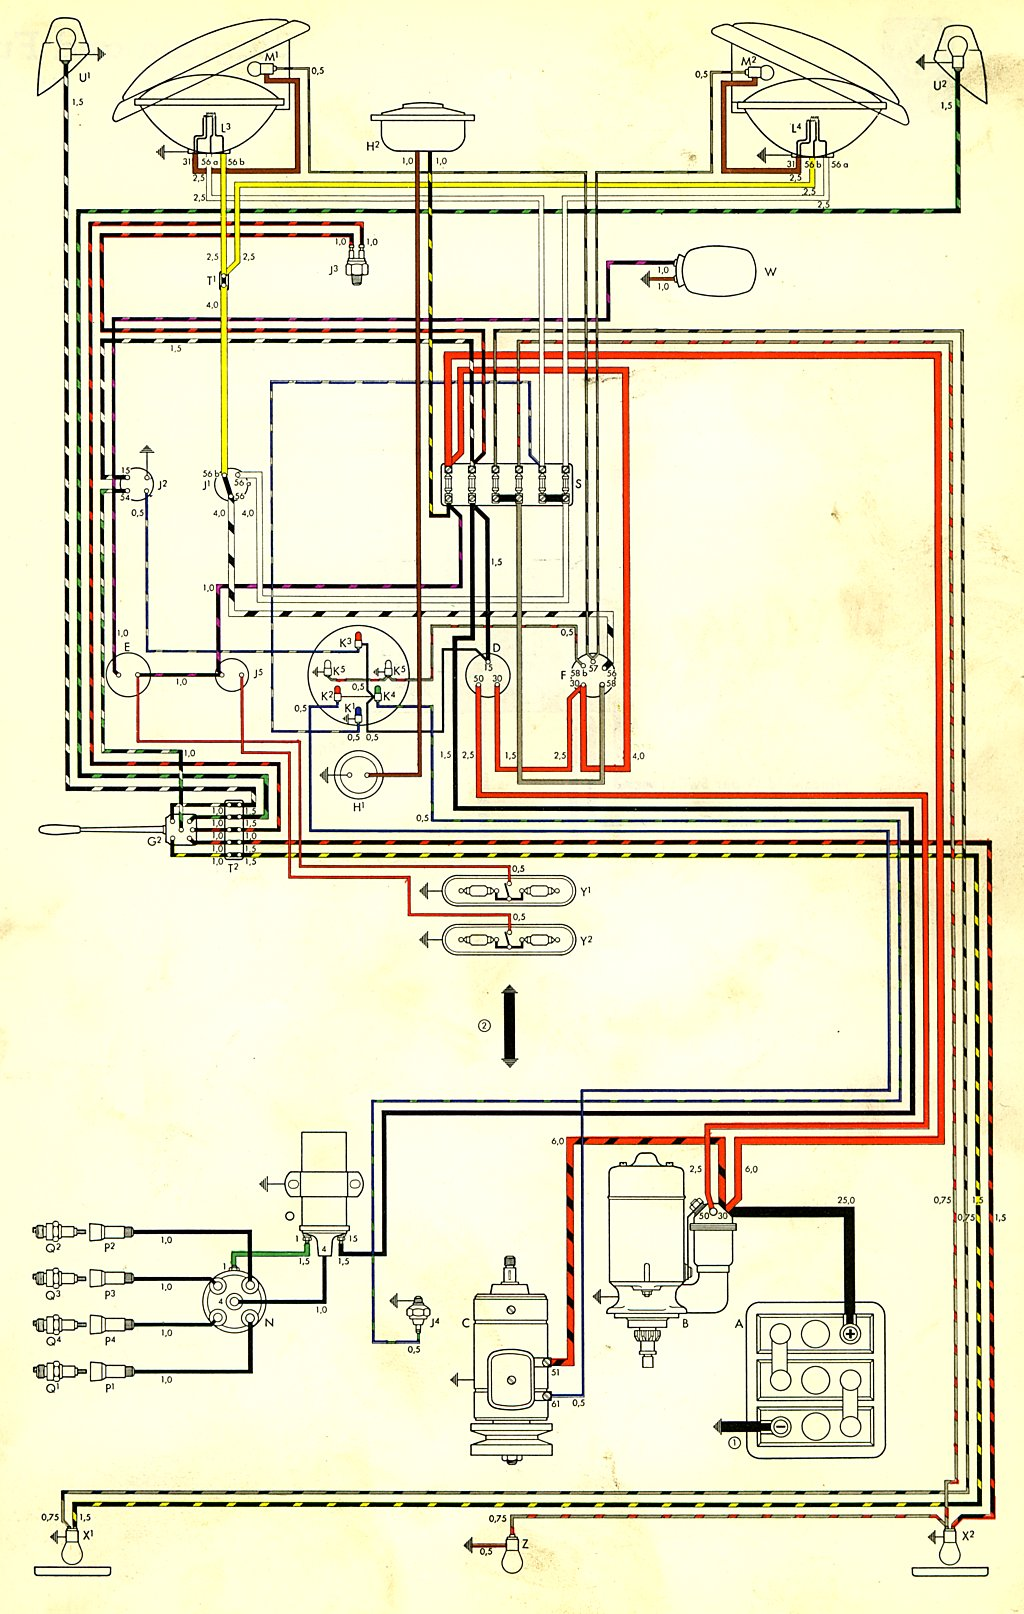 hight resolution of thesamba com type 2 wiring diagrams 1975 vw beetle wiring diagram vw bus wiring diagram